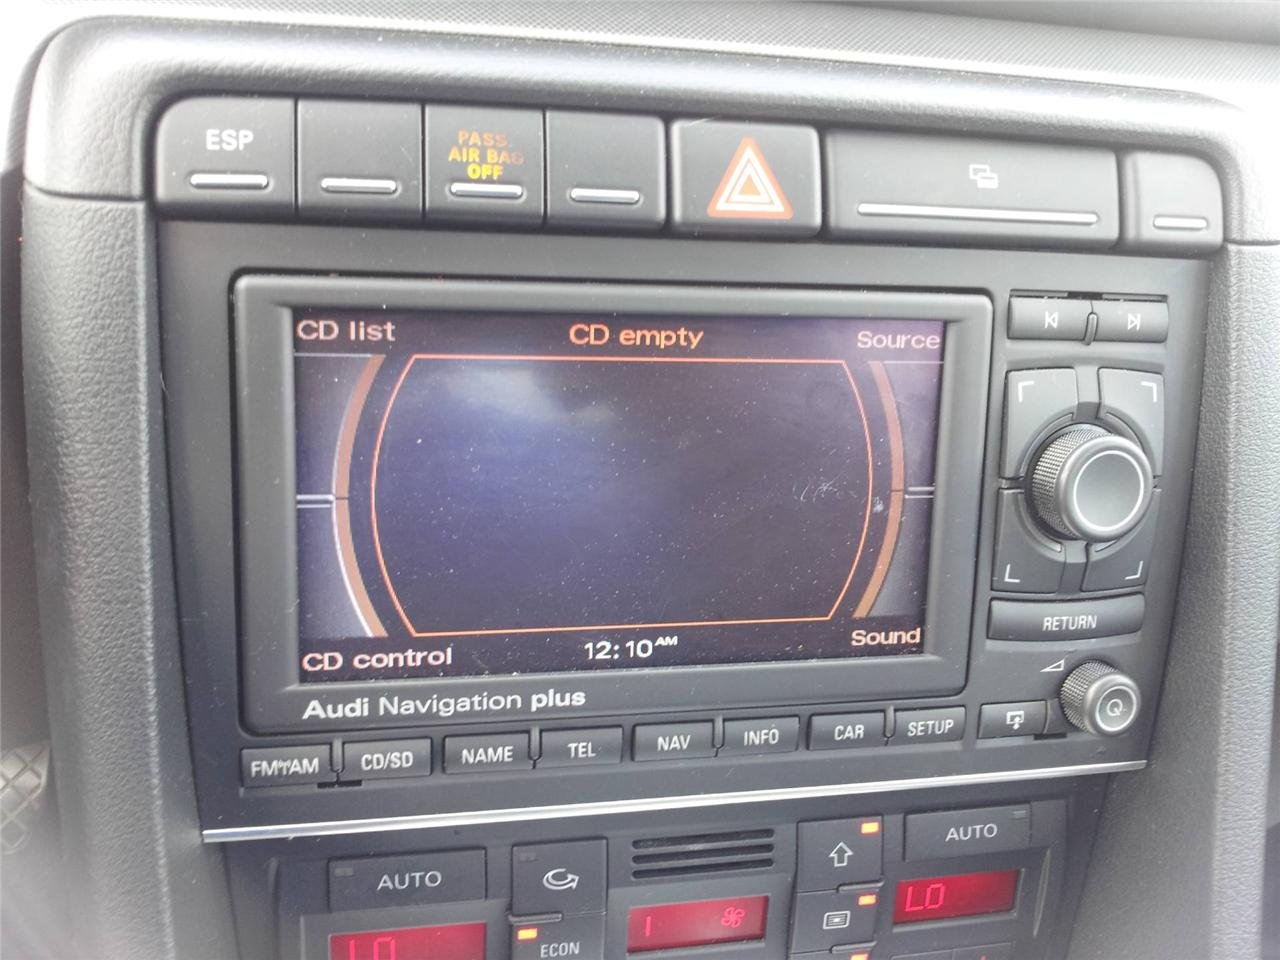 Amazon.com: AUDI RNS-E Navigation GPS System LCD Display DVD CD Player for  Audi S4 A4 (E.C.A.P): Cell Phones & Accessories